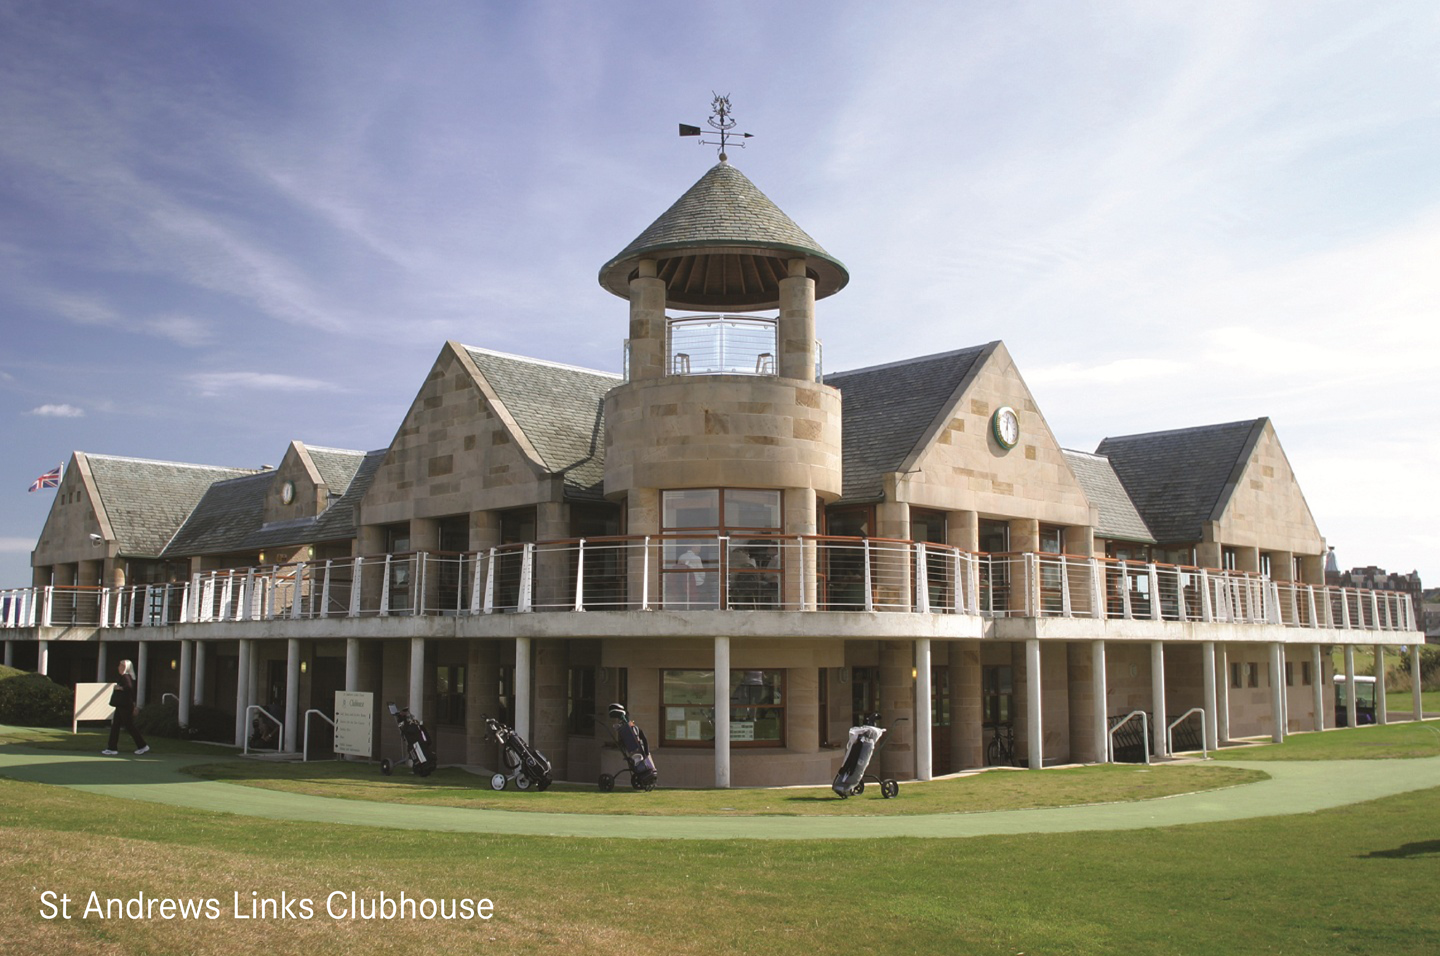 Links Clubhouse